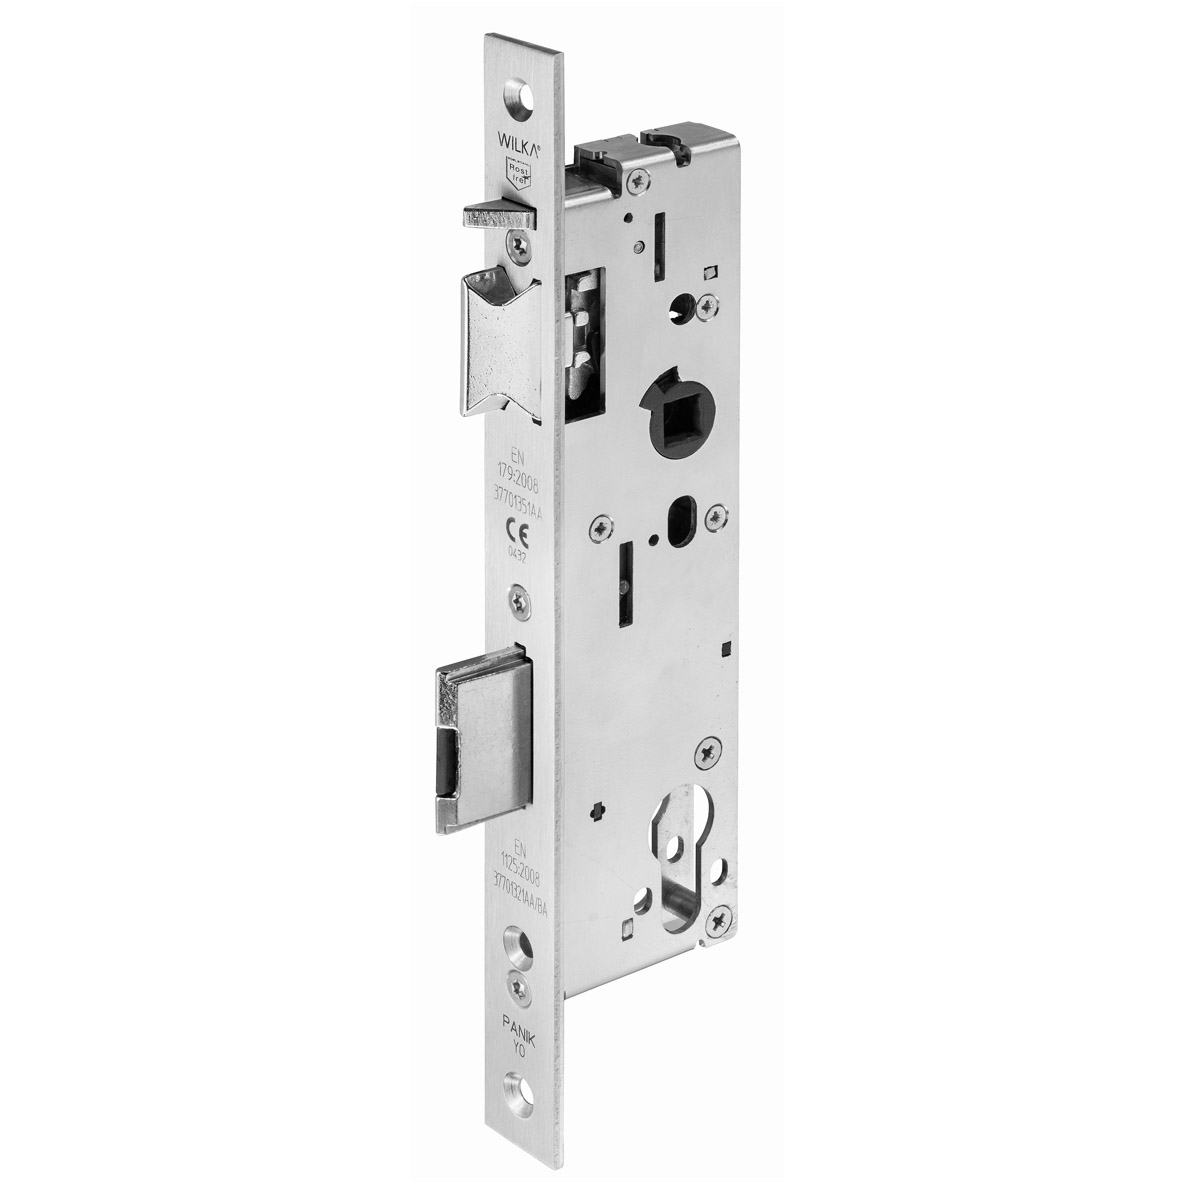 7677 Self-locking emergency exit mortise lock for single